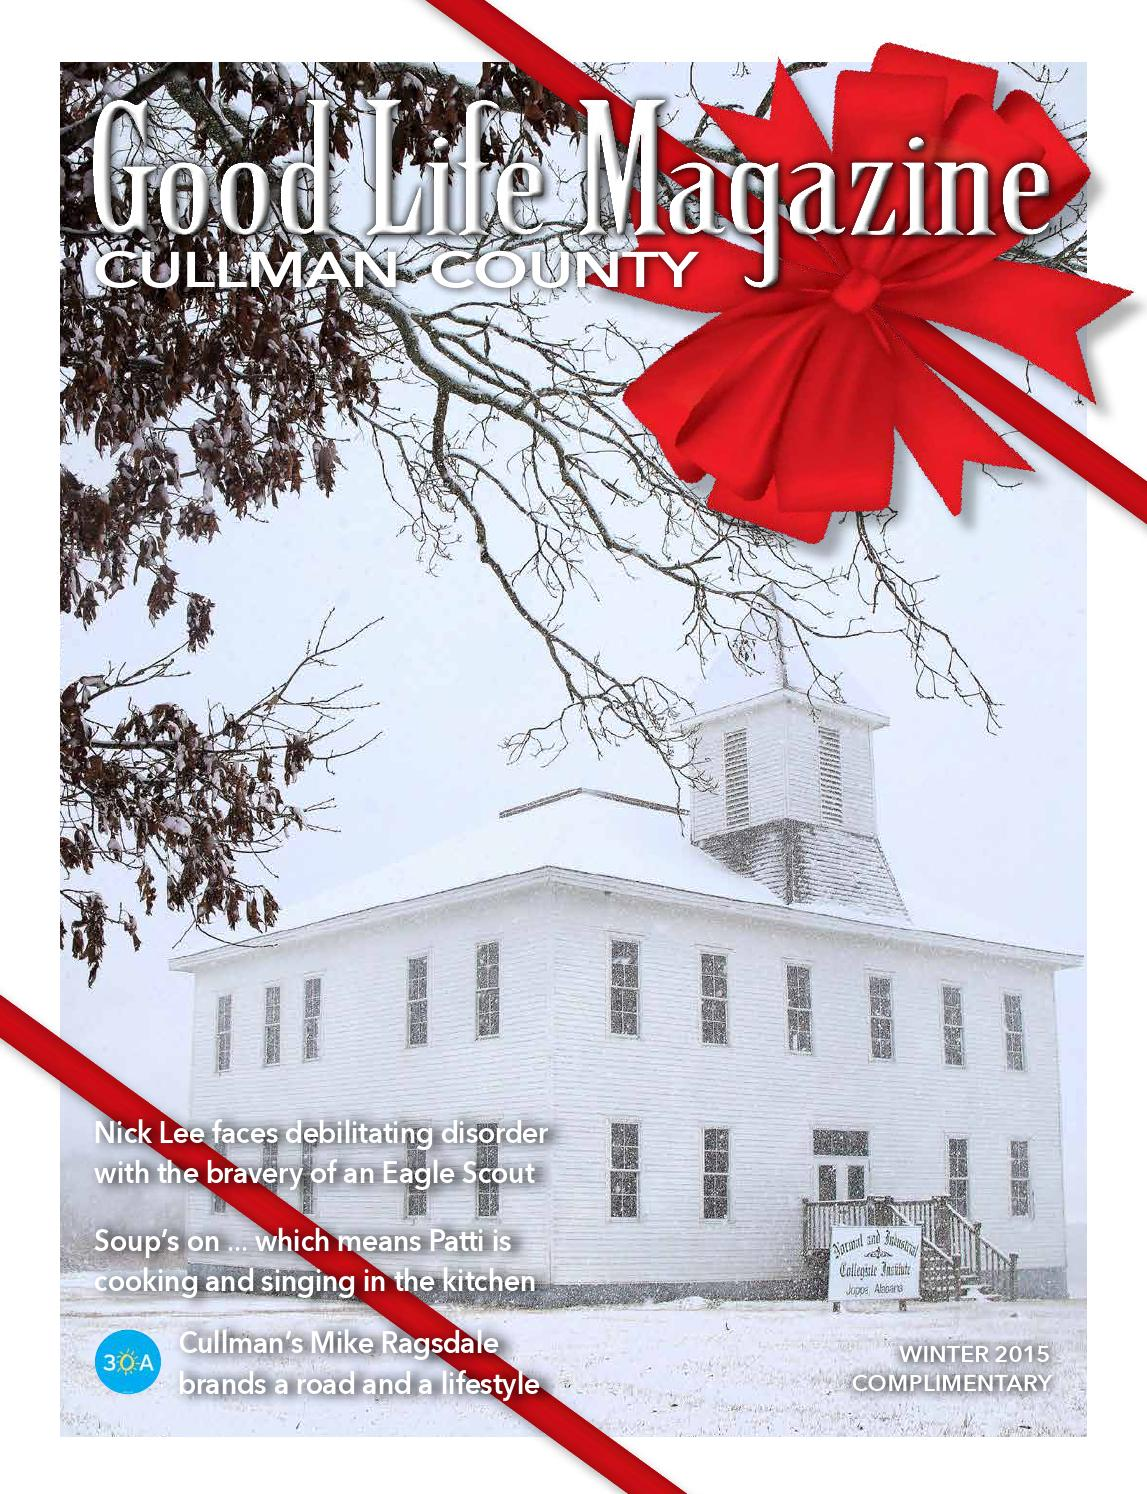 Bill Smith Gmc >> Cullman Good Life Magazine - Winter 2015 by The Good Life Magazine - Issuu